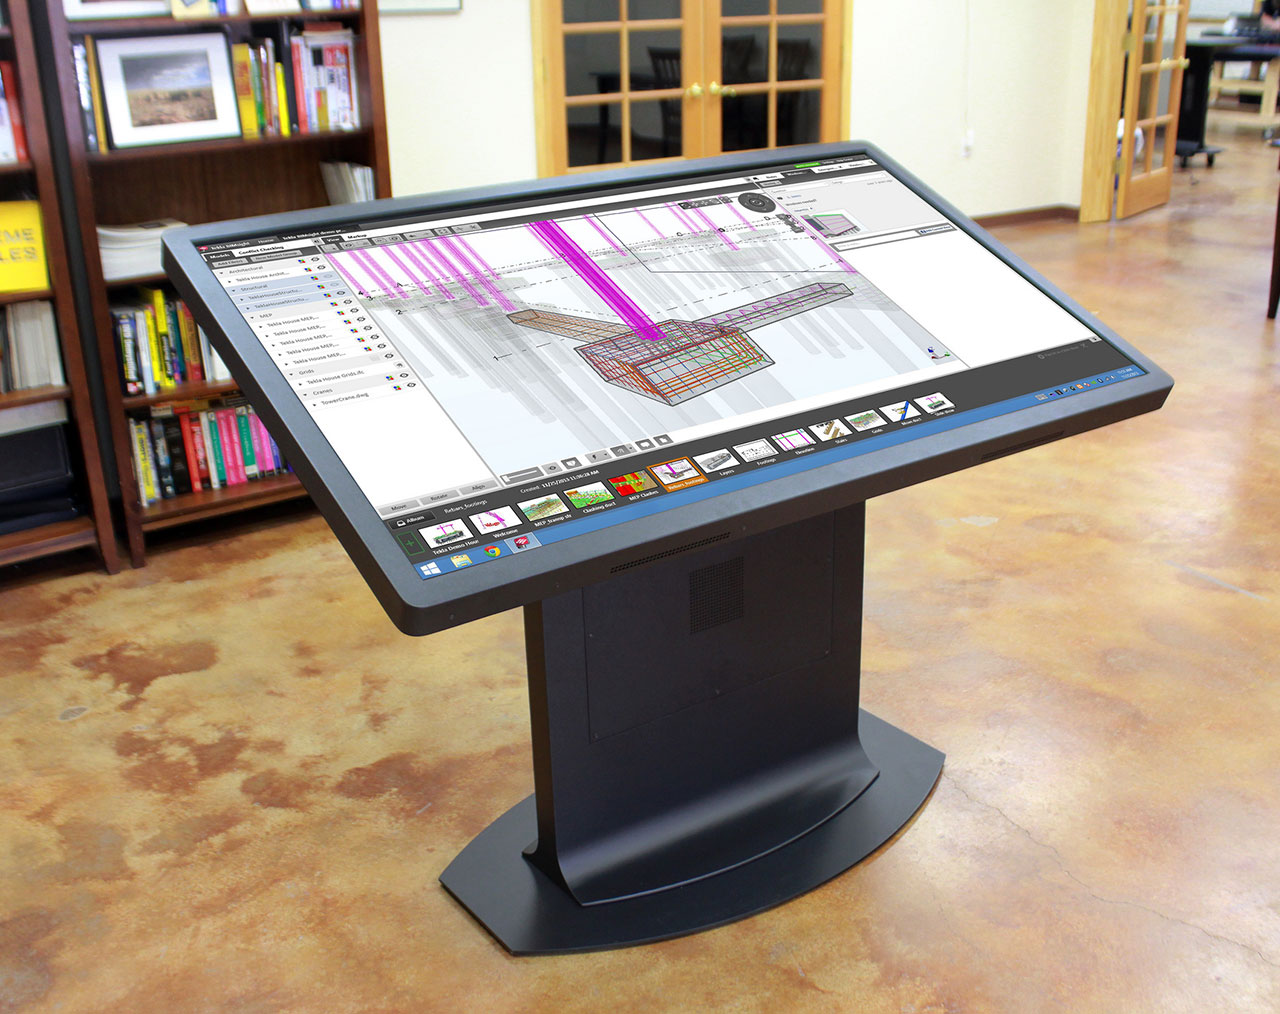 Multitouch Drafting Table: A New Take on the Mechanical Desk